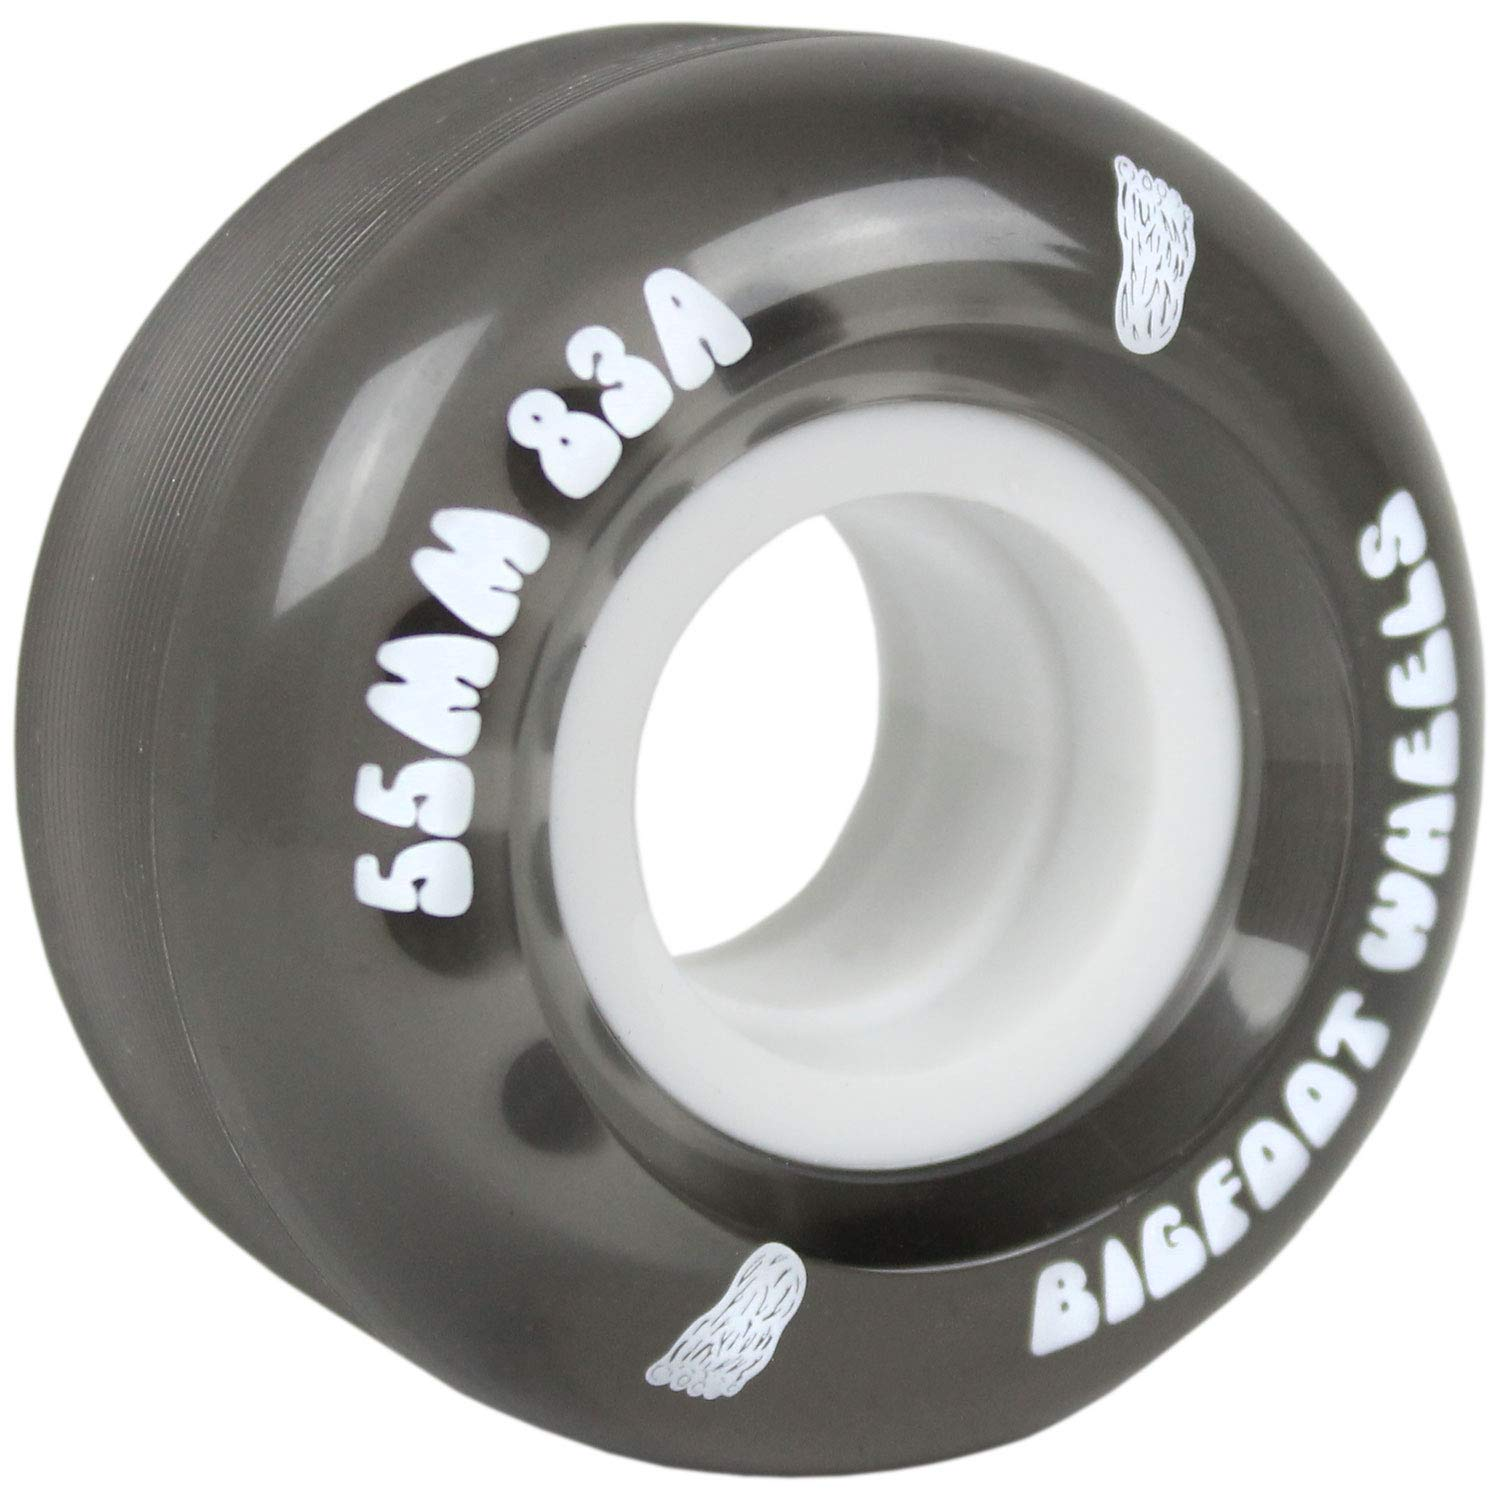 Bigfoot Wheels Skateboard Wheels 53mm 83A Soft Cruiser Filmer Wheels Black (Set of 4) by Bigfoot Wheels